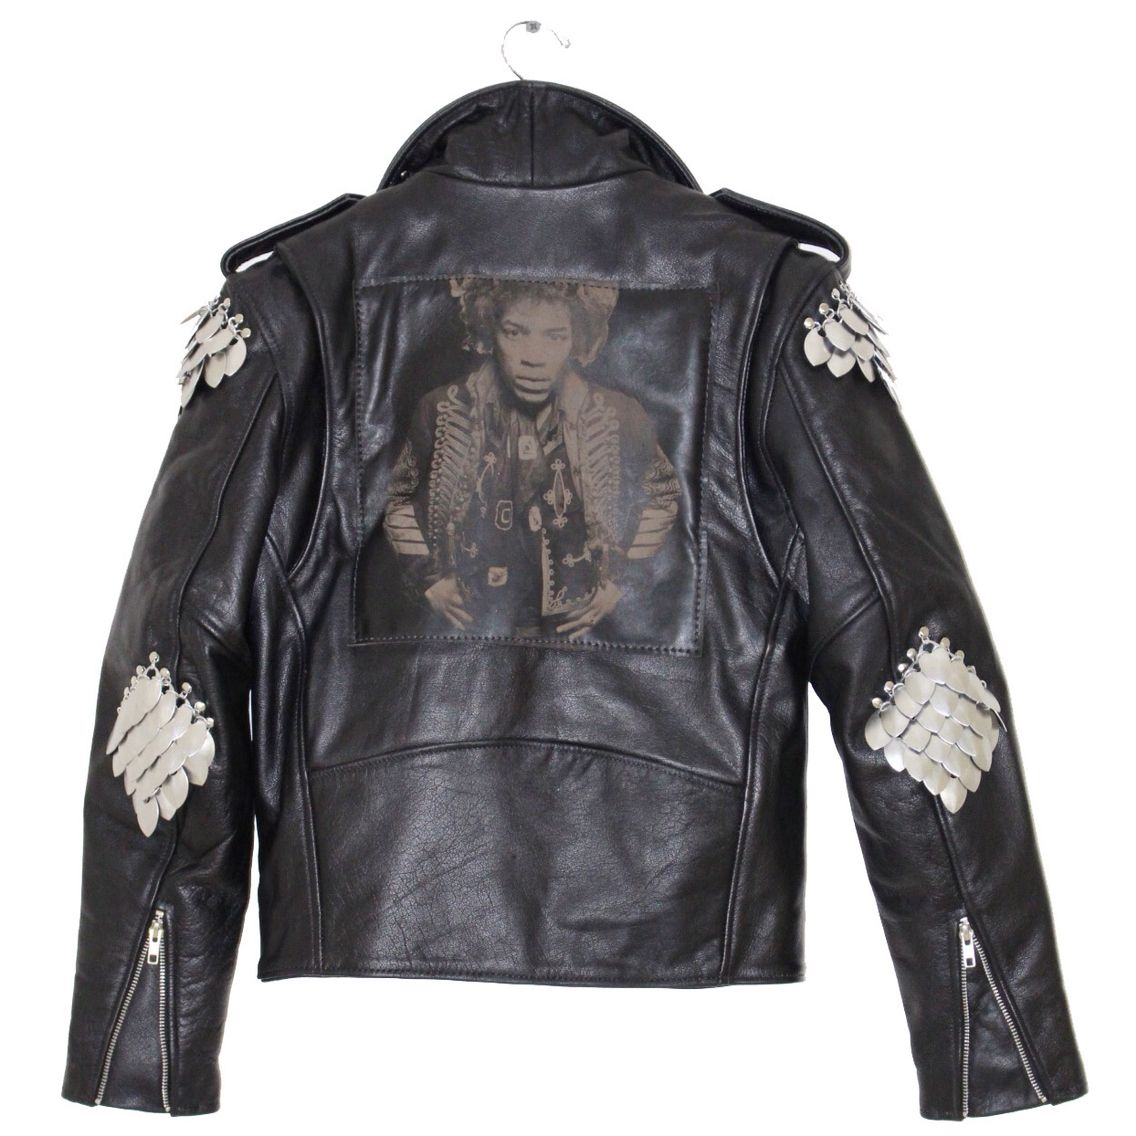 Jimi Hendrix Engraved Leather Back Patch And Quad Hand Made Metal Shoulder Elbow Pieces By Understated Leather Leather Jackets Vintage Leather [ 1136 x 1136 Pixel ]